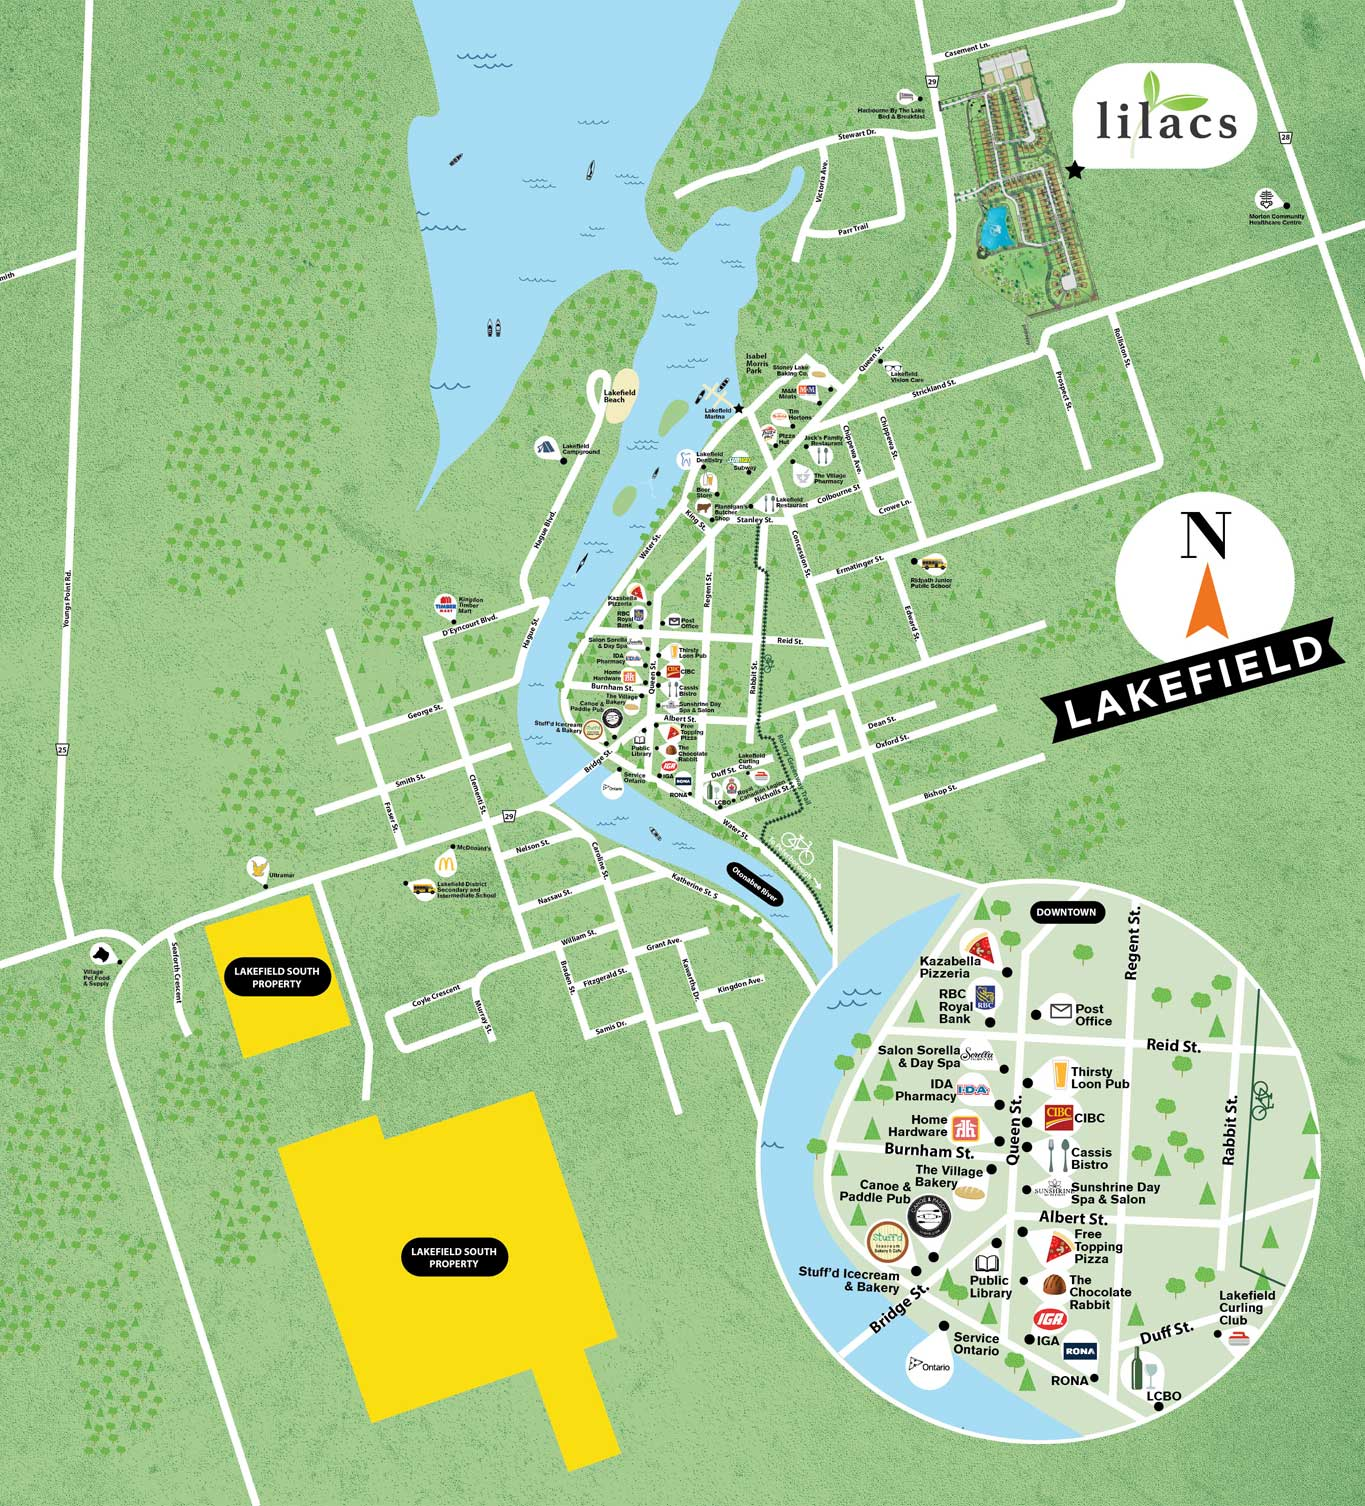 Lakefield Amenities Map